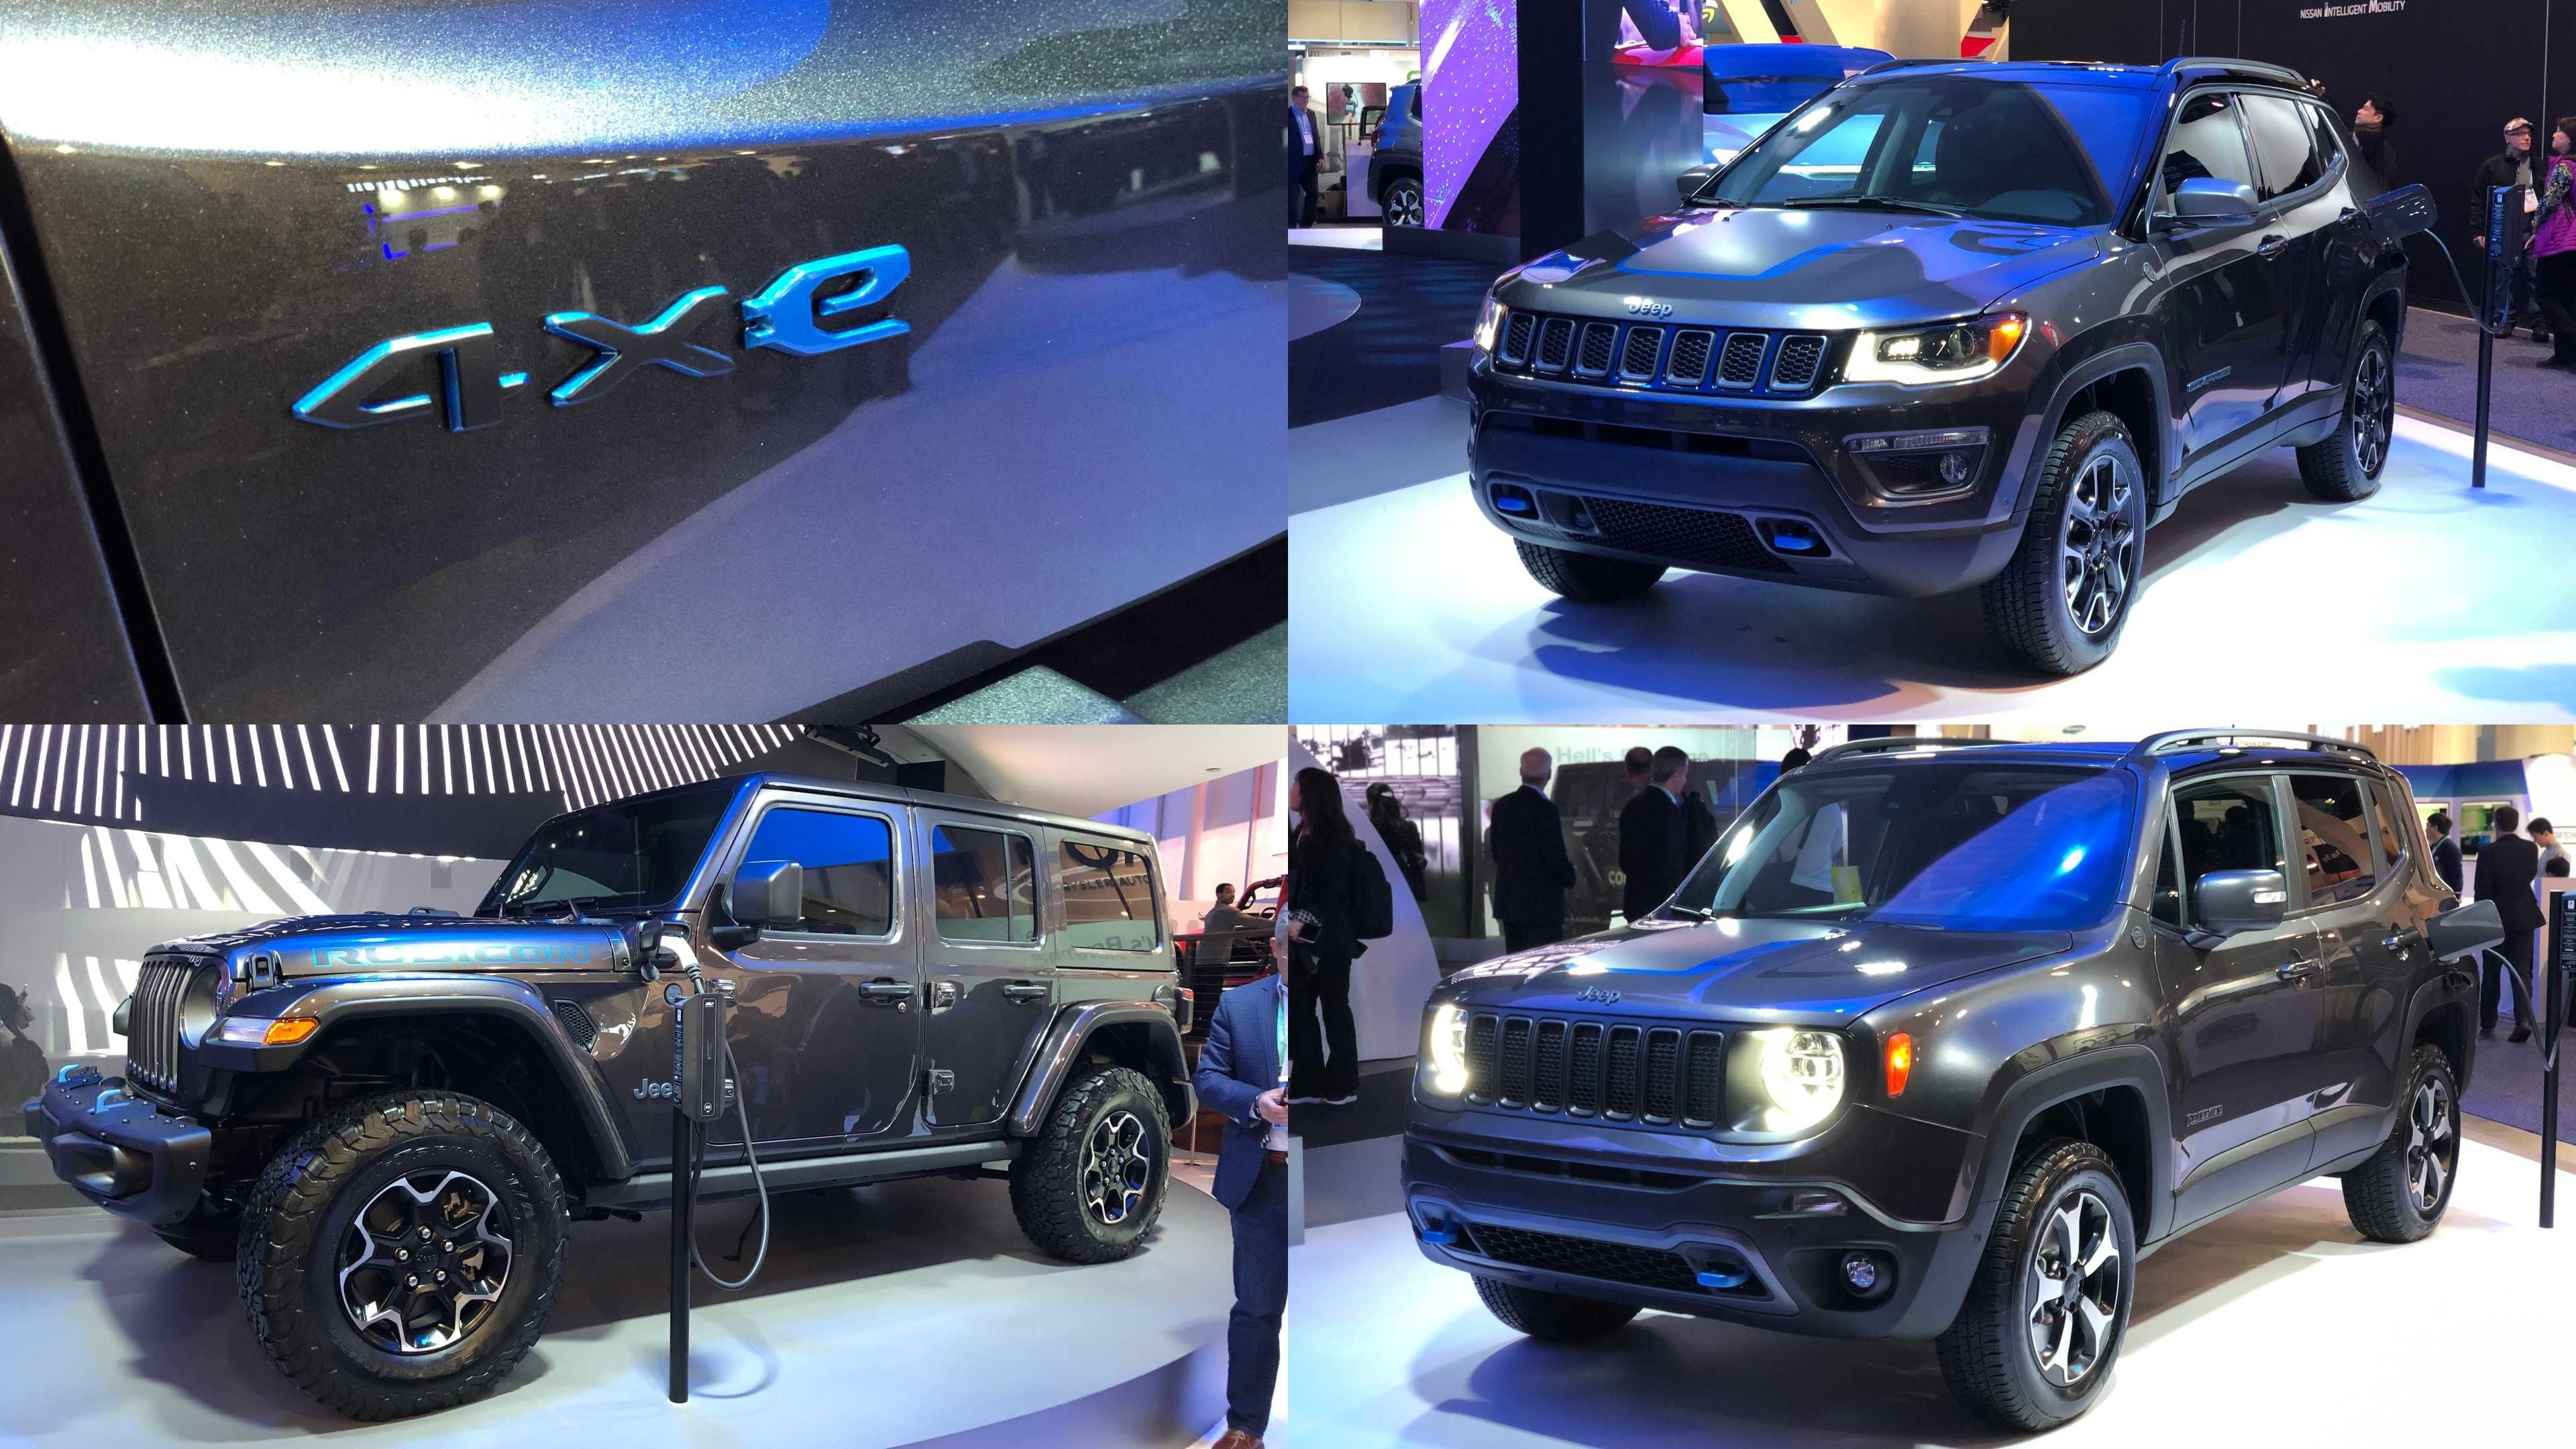 Check Out Jeep Wrangler 4xe Phev Plugged In And Charging At Ces In 2020 Jeep Wrangler Jeep Wrangler